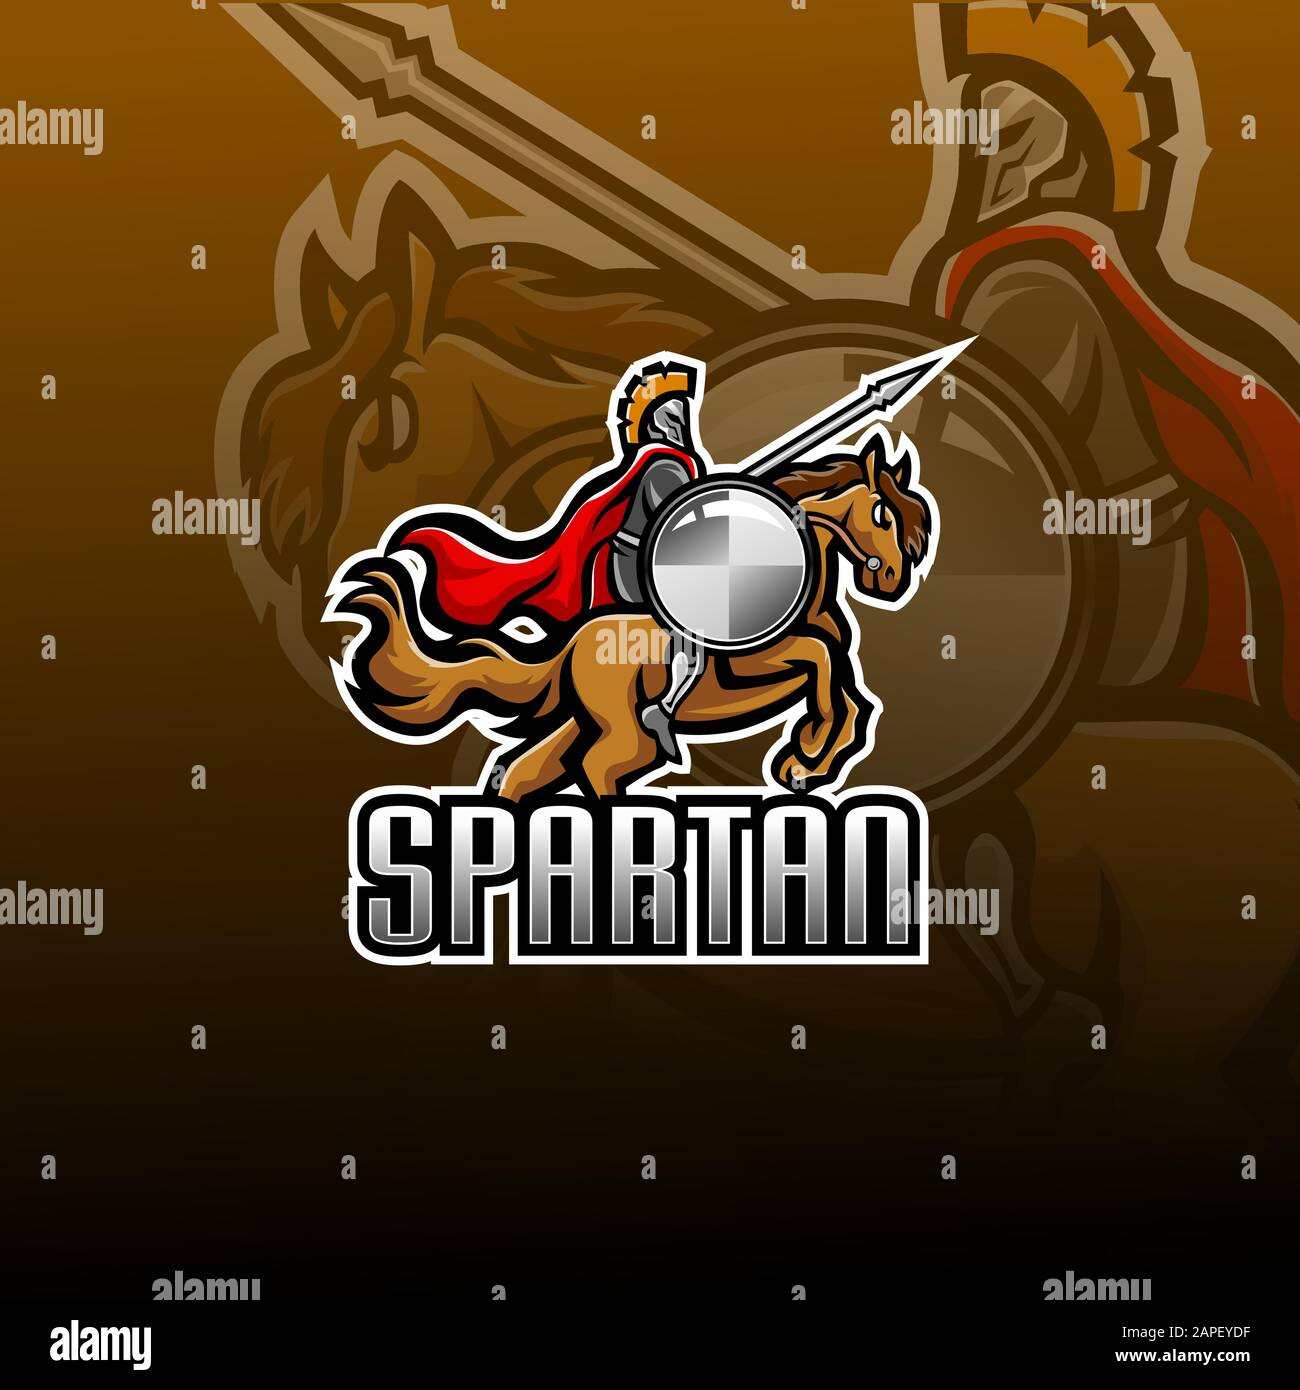 Spartan With Horse Jump Esport Mascot Logo Stock Vector Image Art Alamy